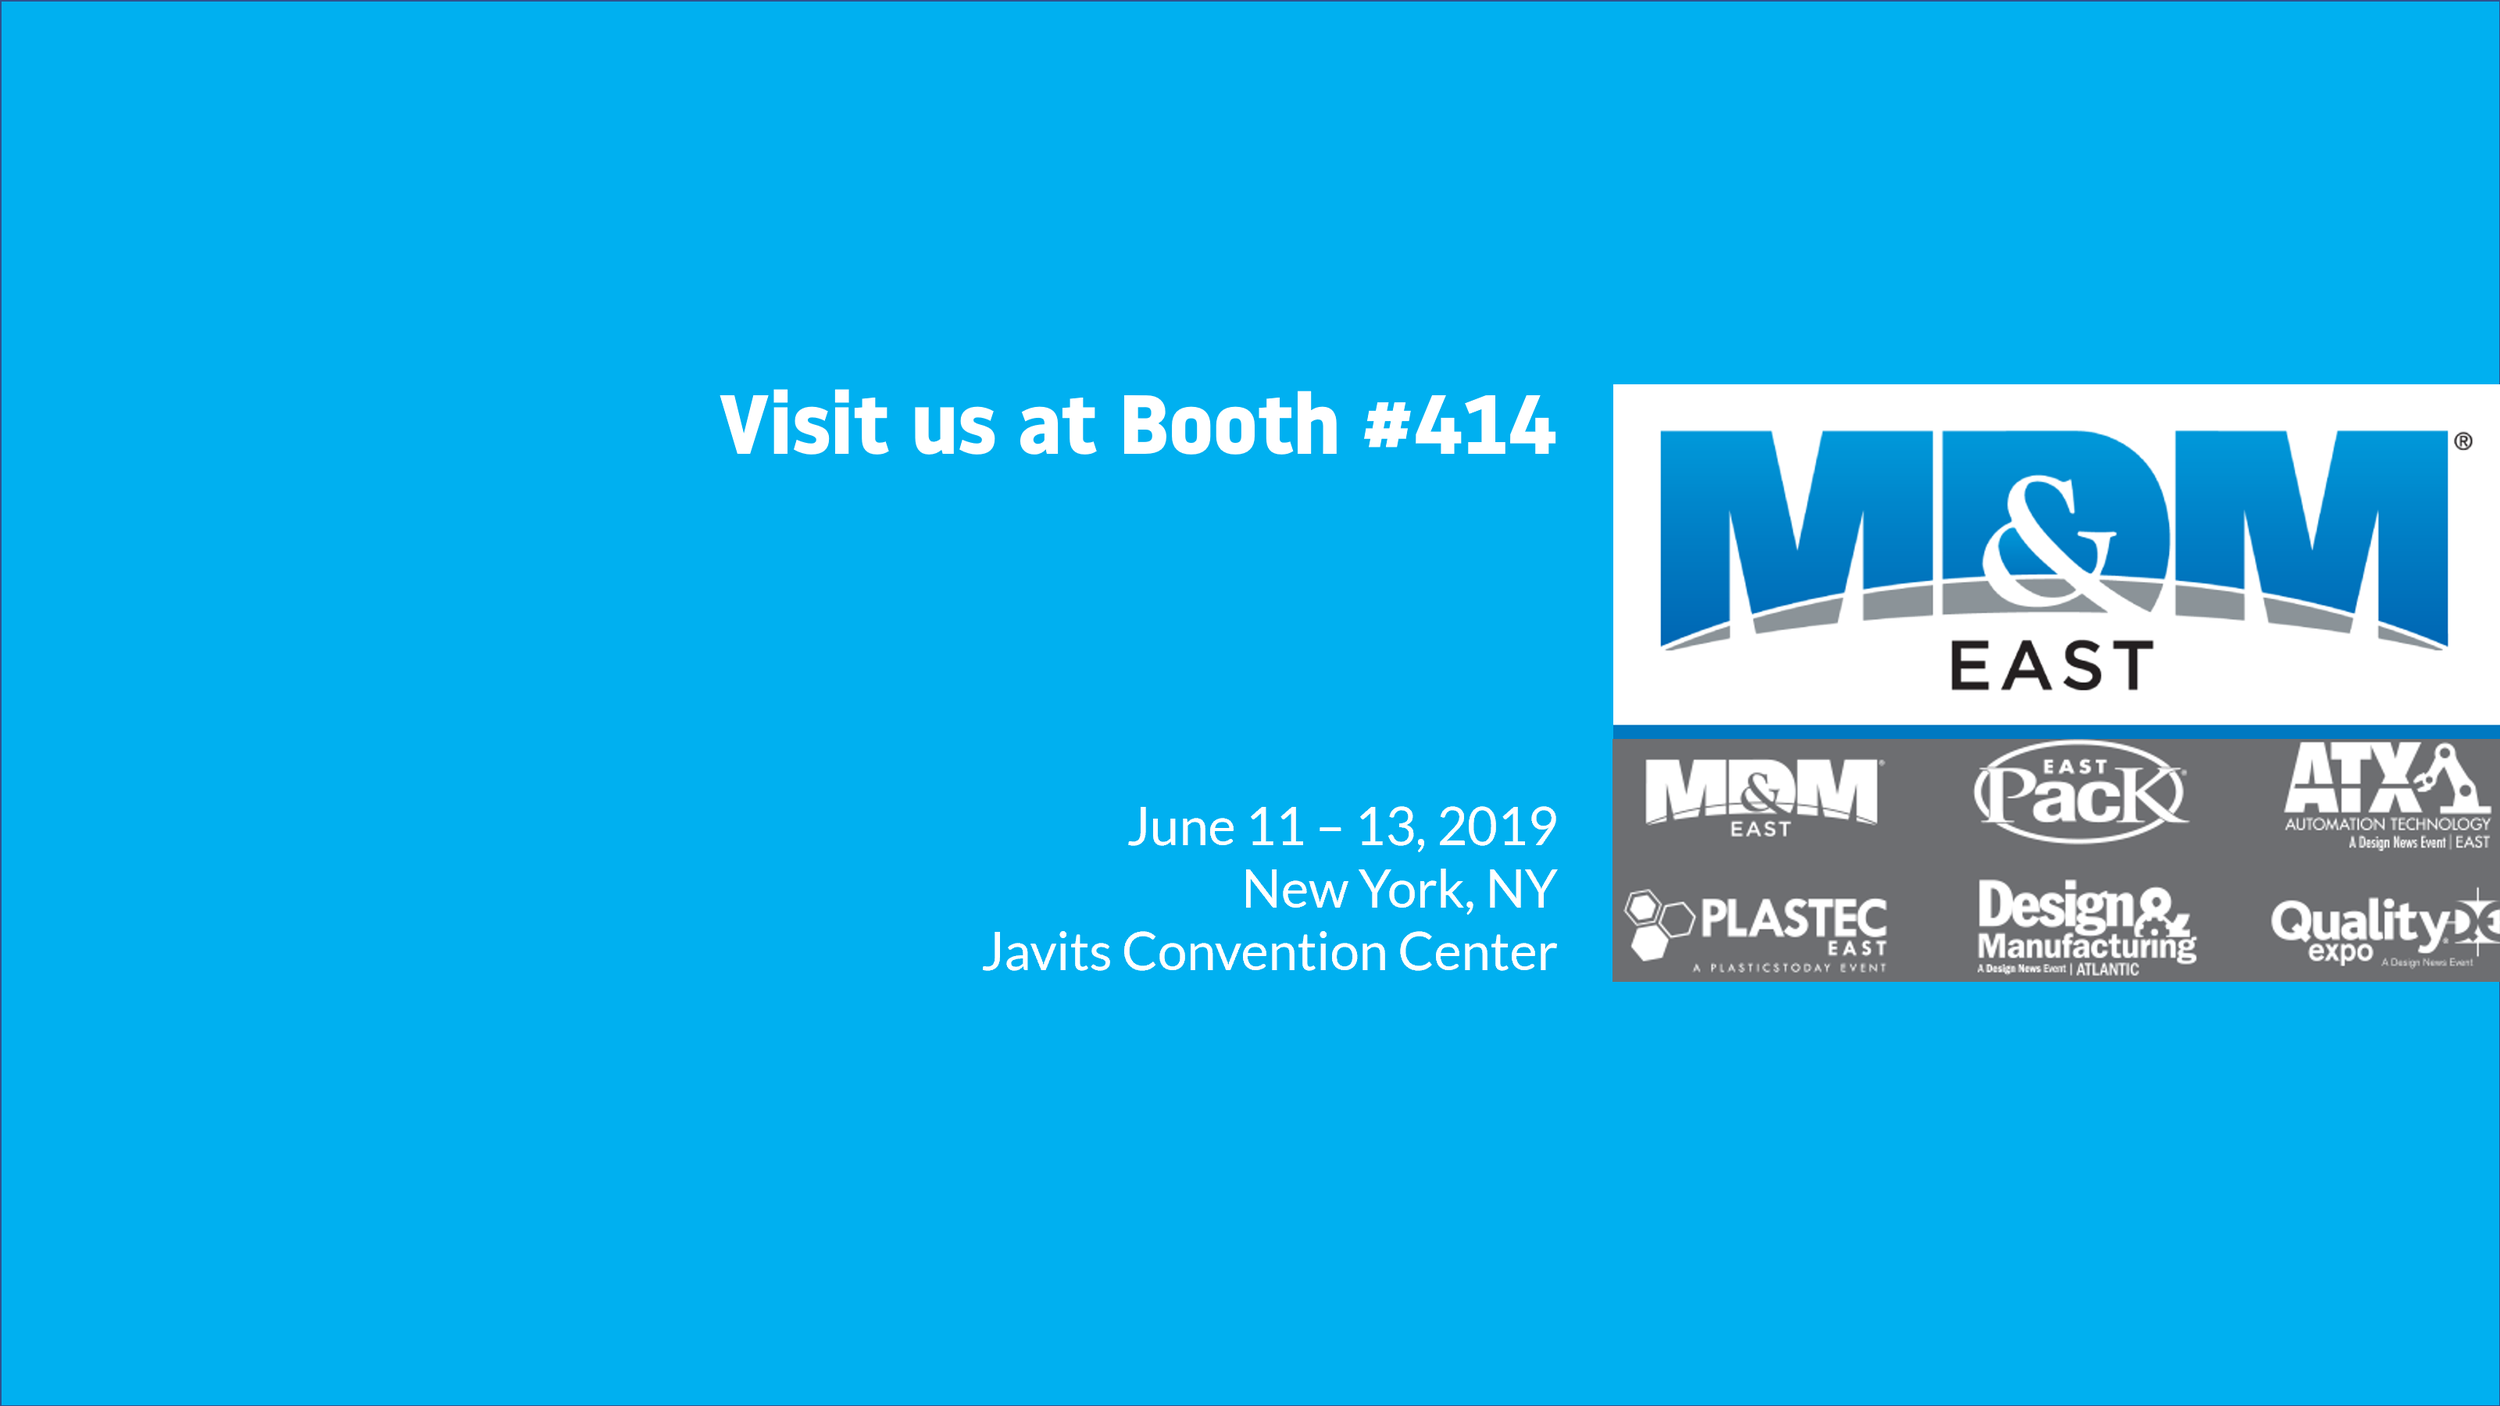 Visit Linx at MD&M East! - We'll be in booth 414 June 11-13 at the Javits Convention Center!